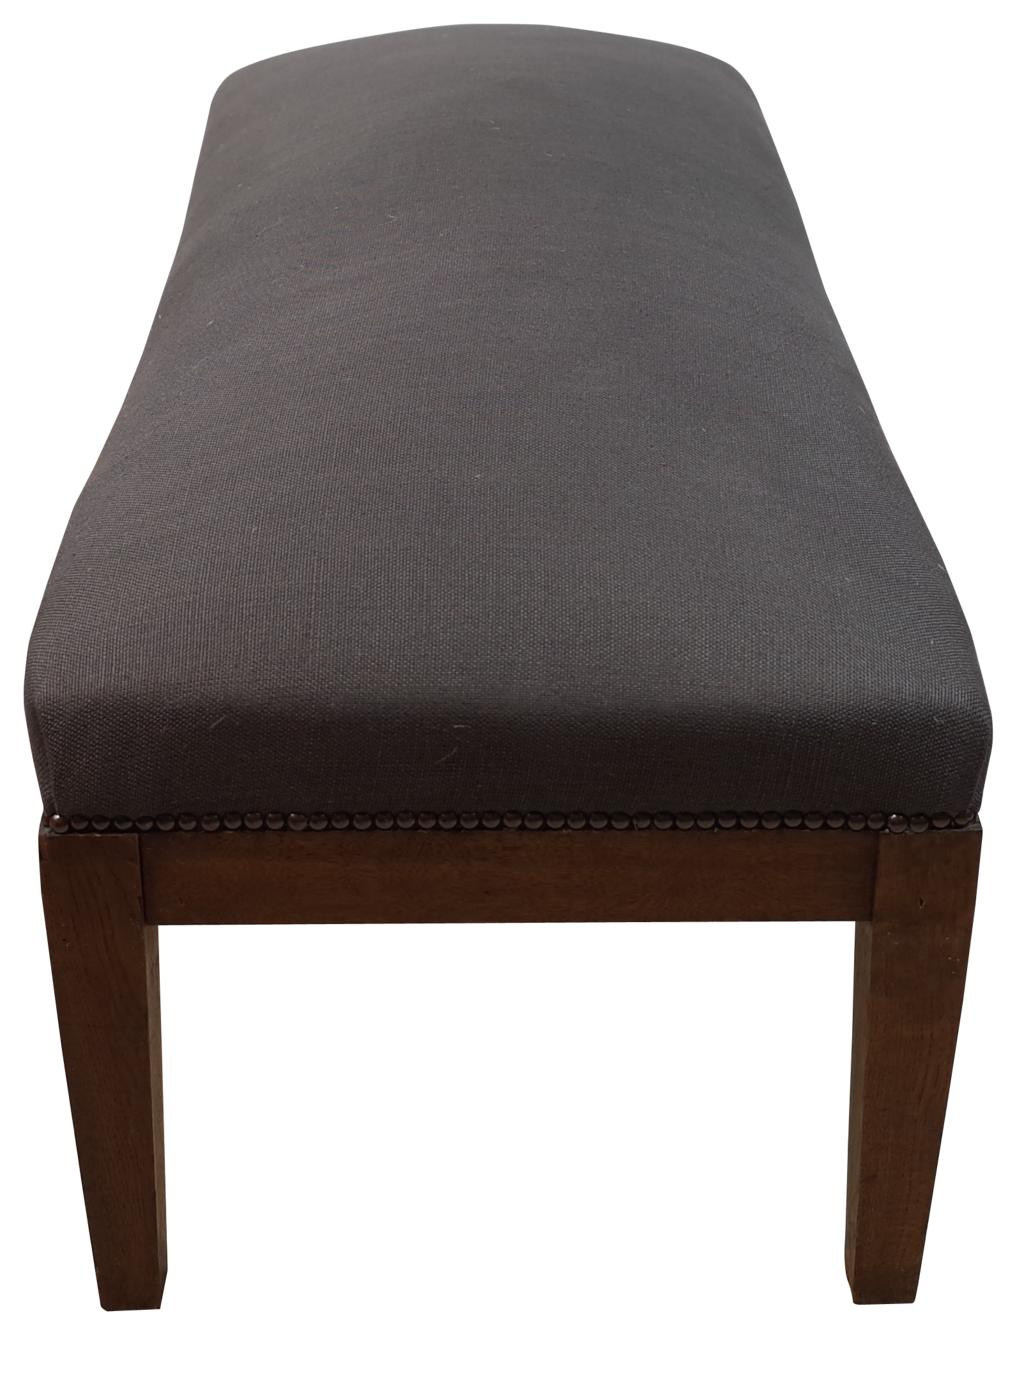 upholstered bench stool decorative collective. Black Bedroom Furniture Sets. Home Design Ideas